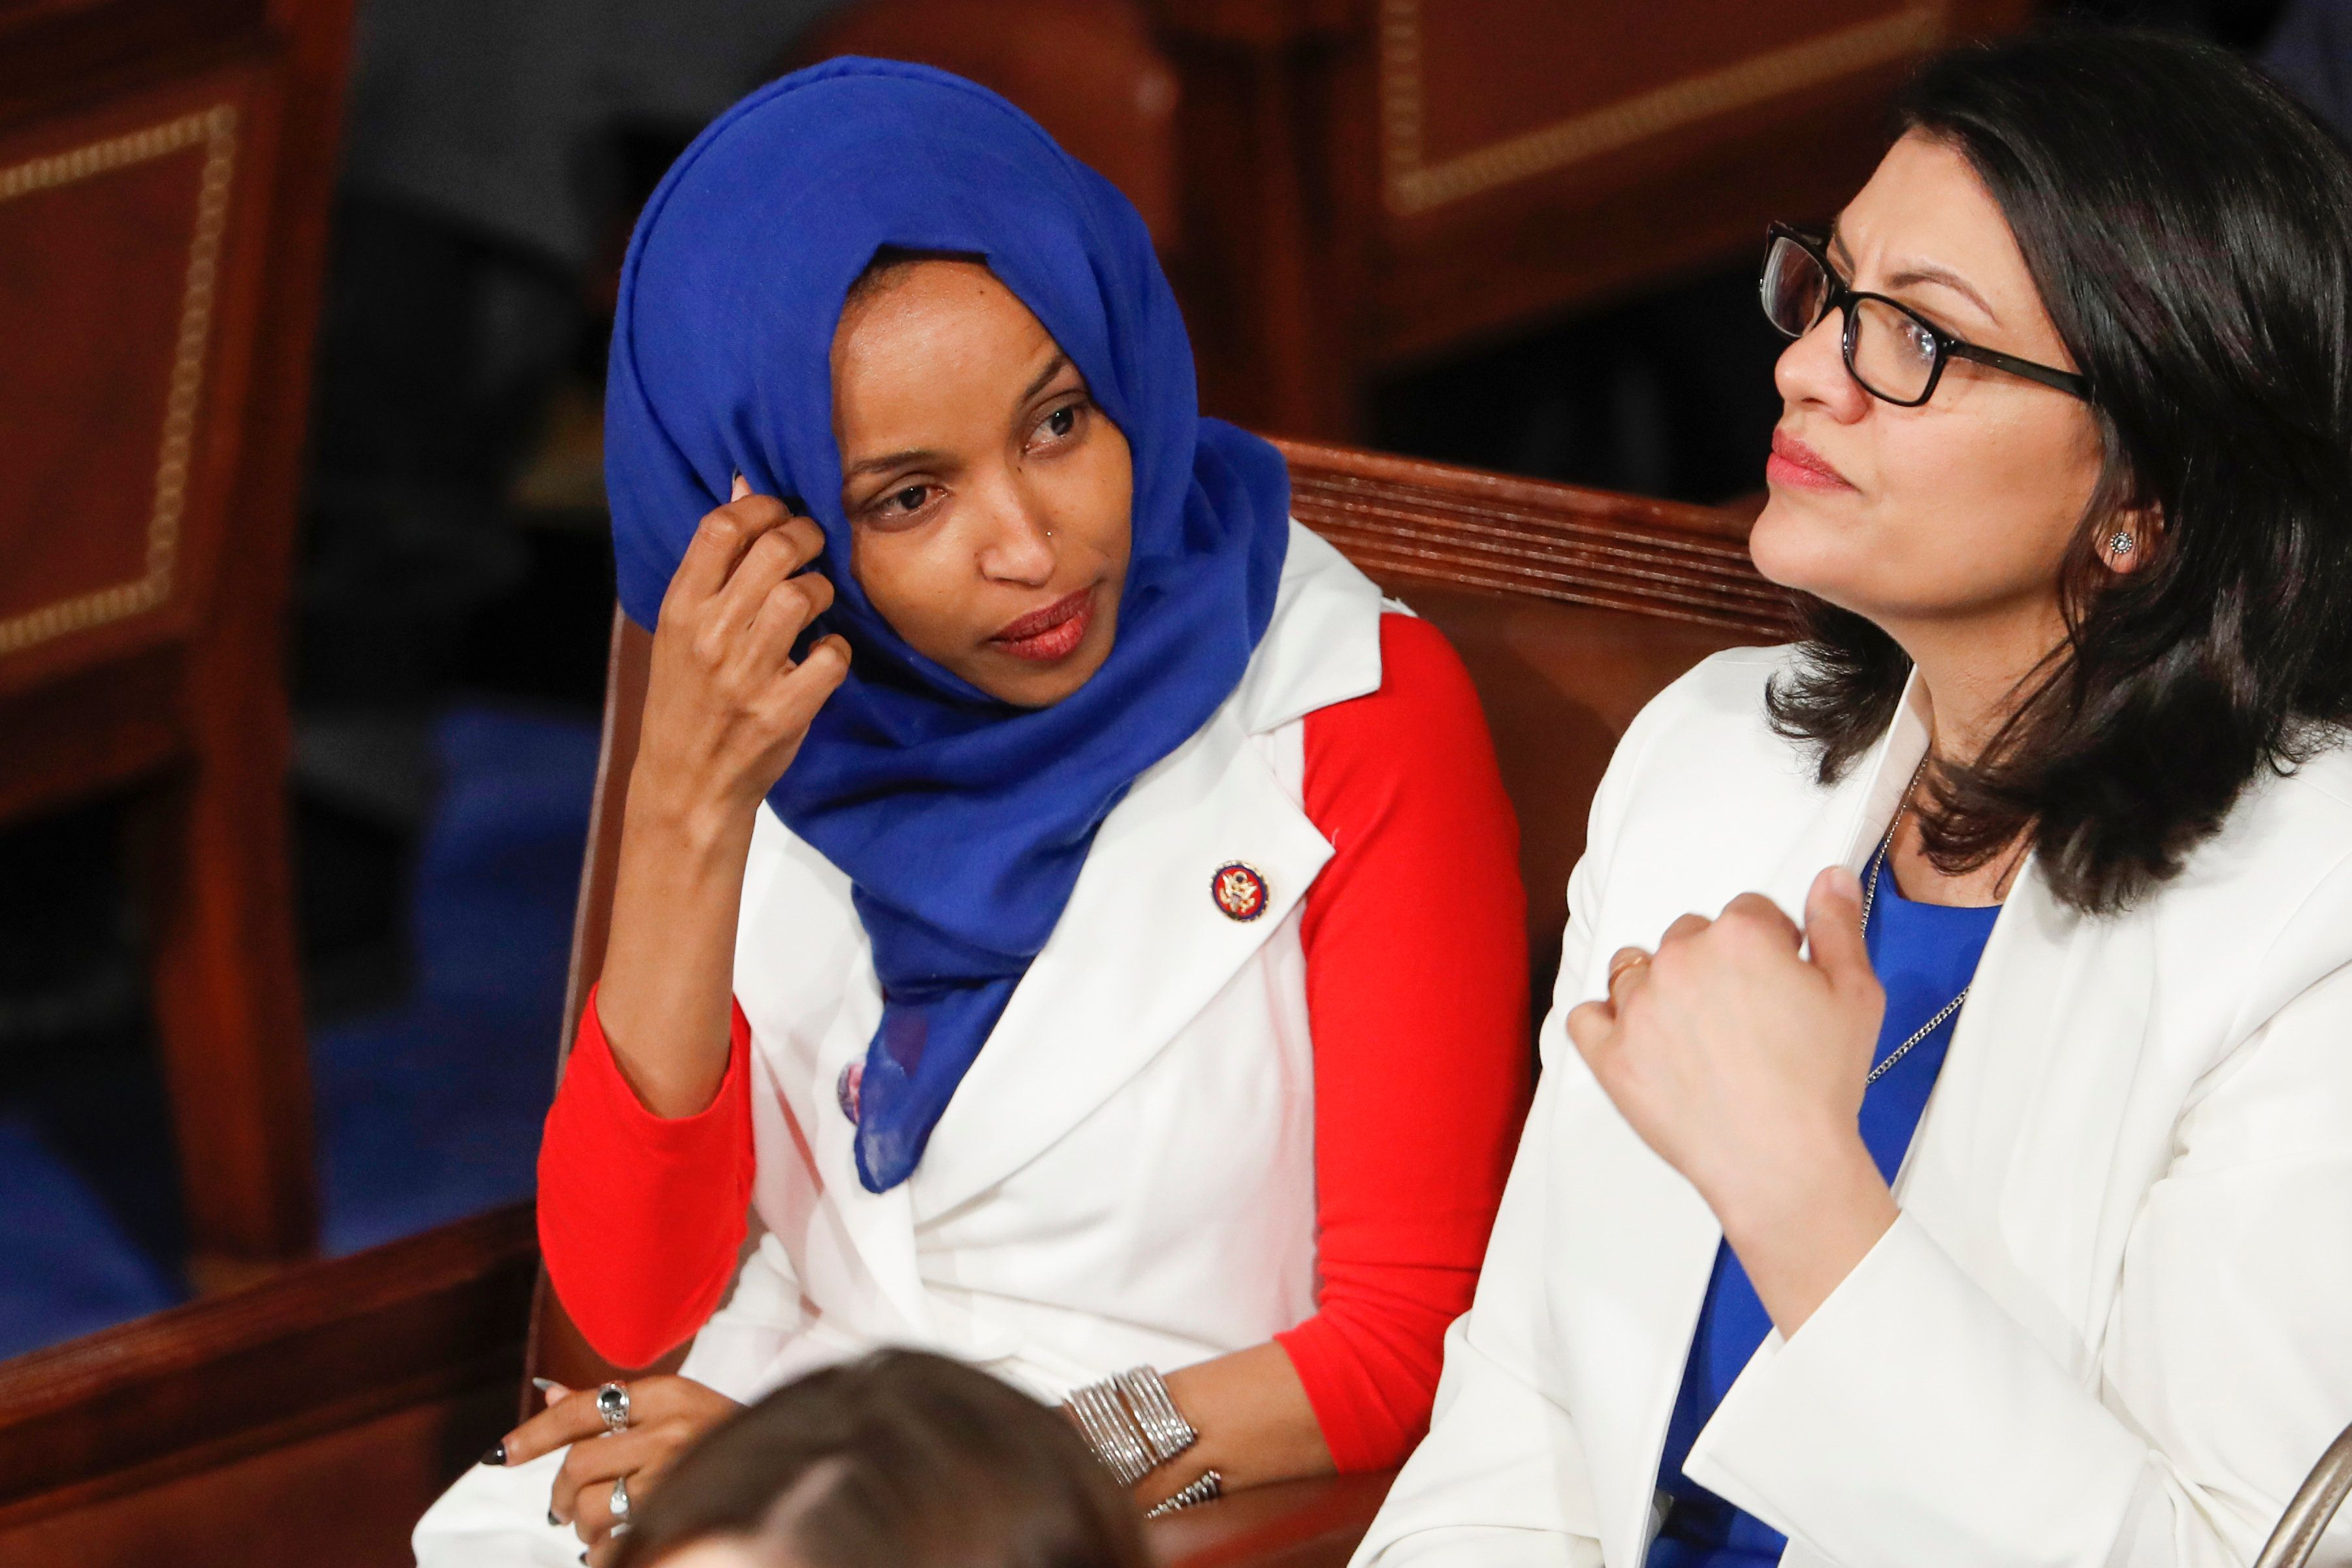 Donald Trump Criticizes Rep. Ilhan Omar For Tweets: 'She Should Be